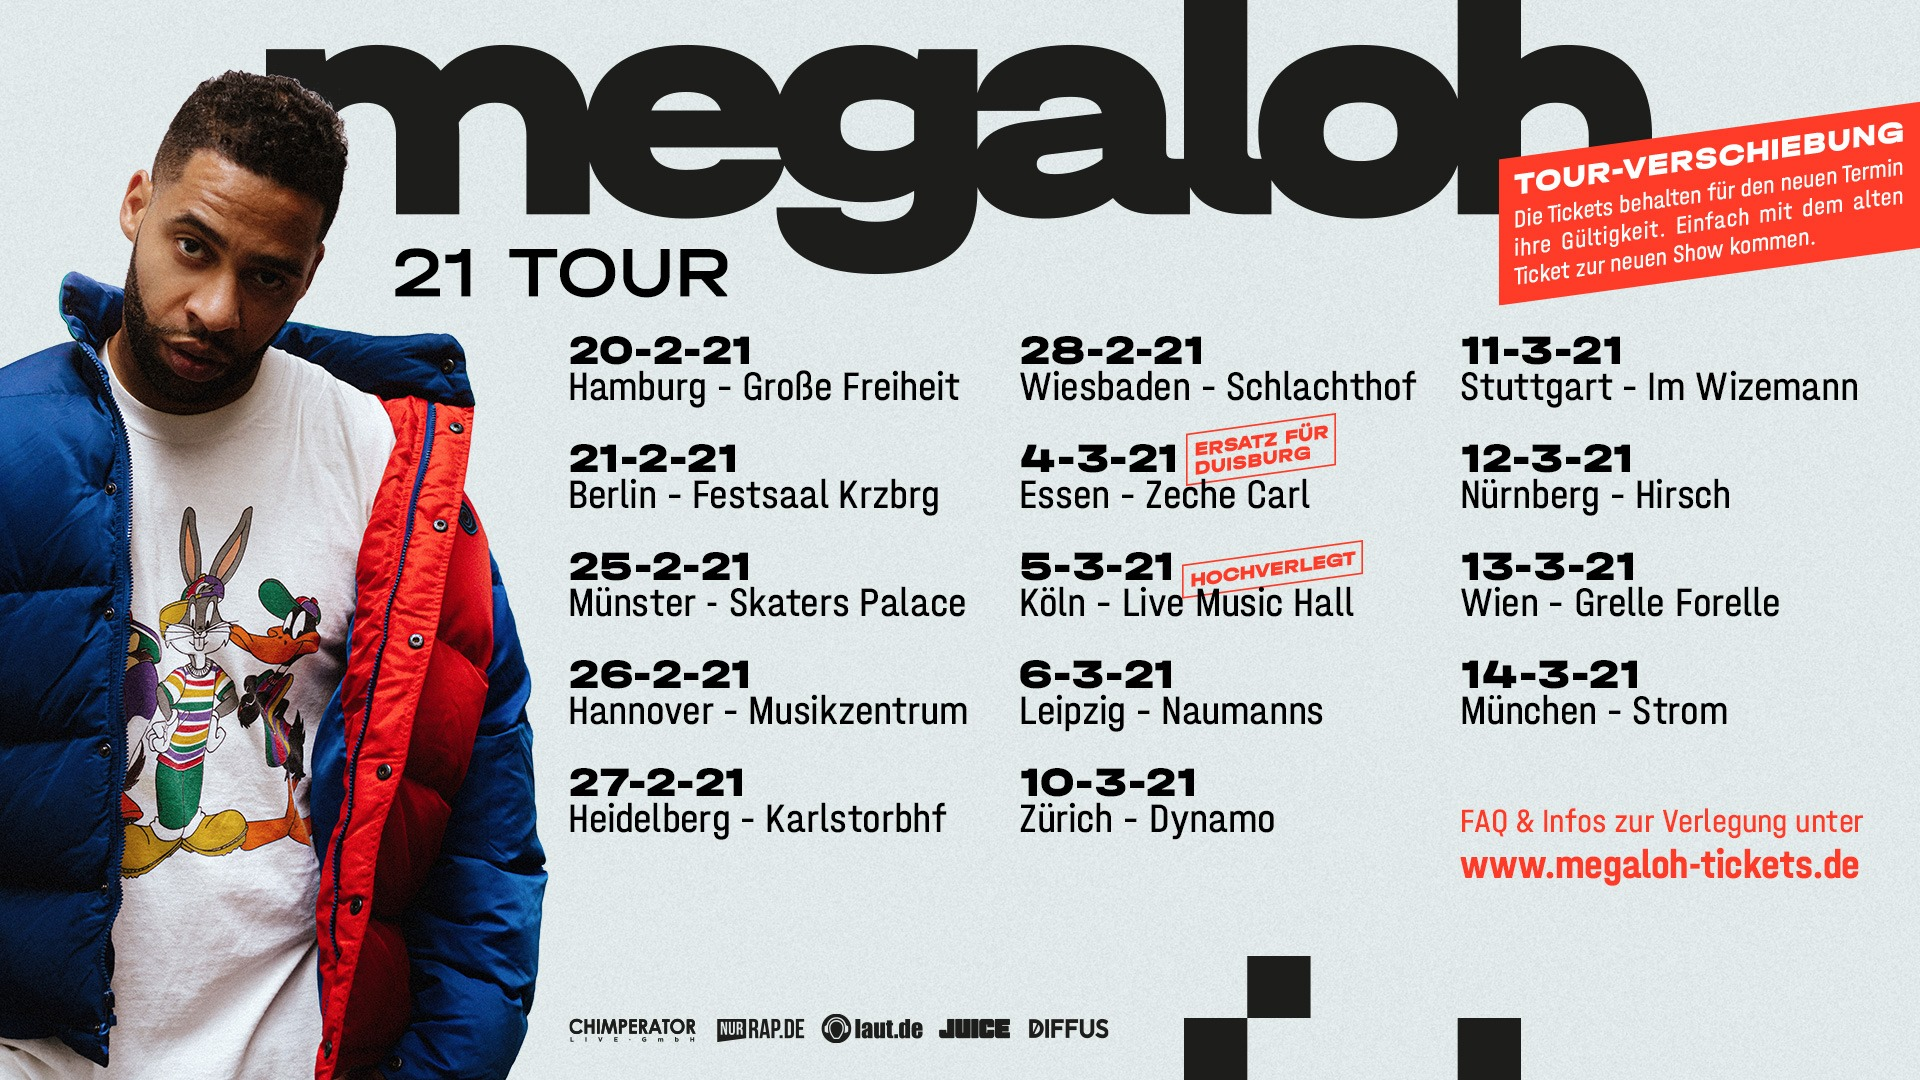 Megaloh am 3. October 2020 @ Grelle Forelle.